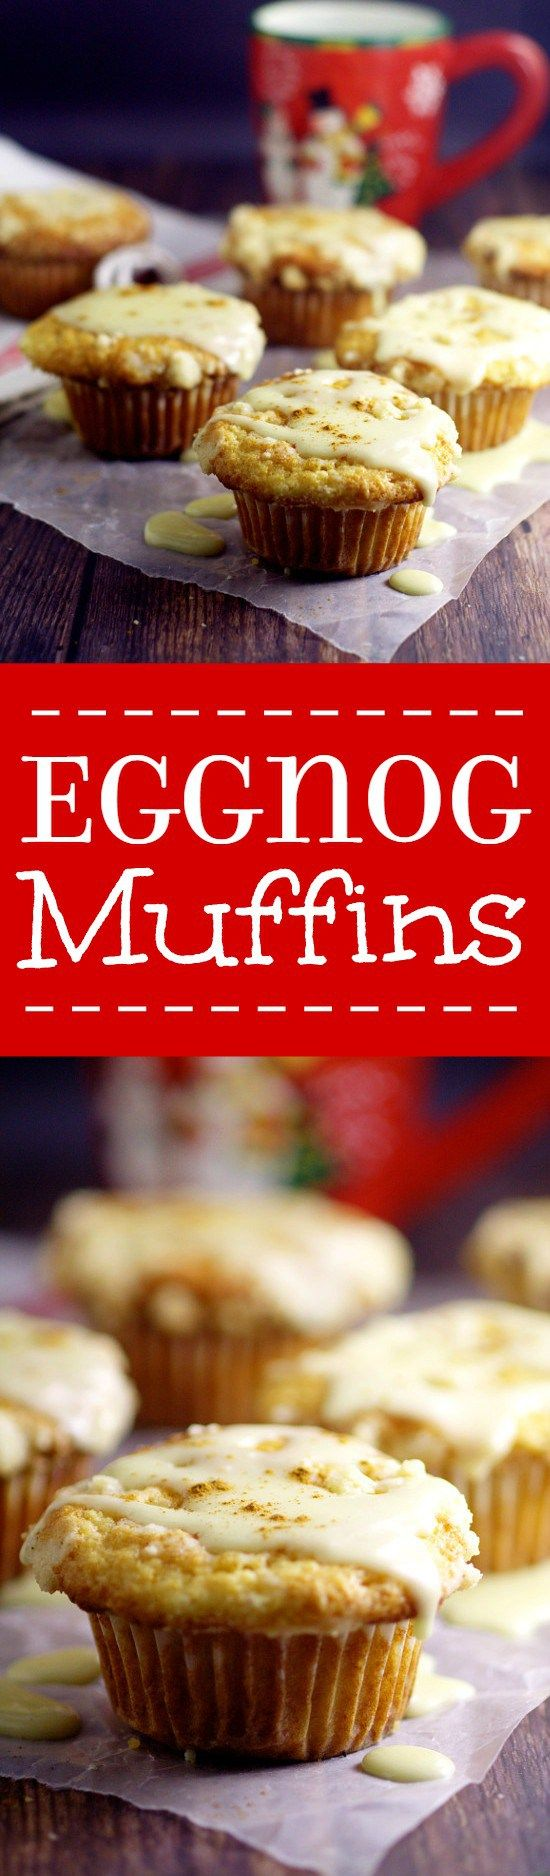 Eggnog Muffins recipe with real eggnog to give them a rich, moist texture and flavor with a crunchy streusel topping and a to-die-for eggnog glaze. Perfect recipe for a Christmas morning breakfast!